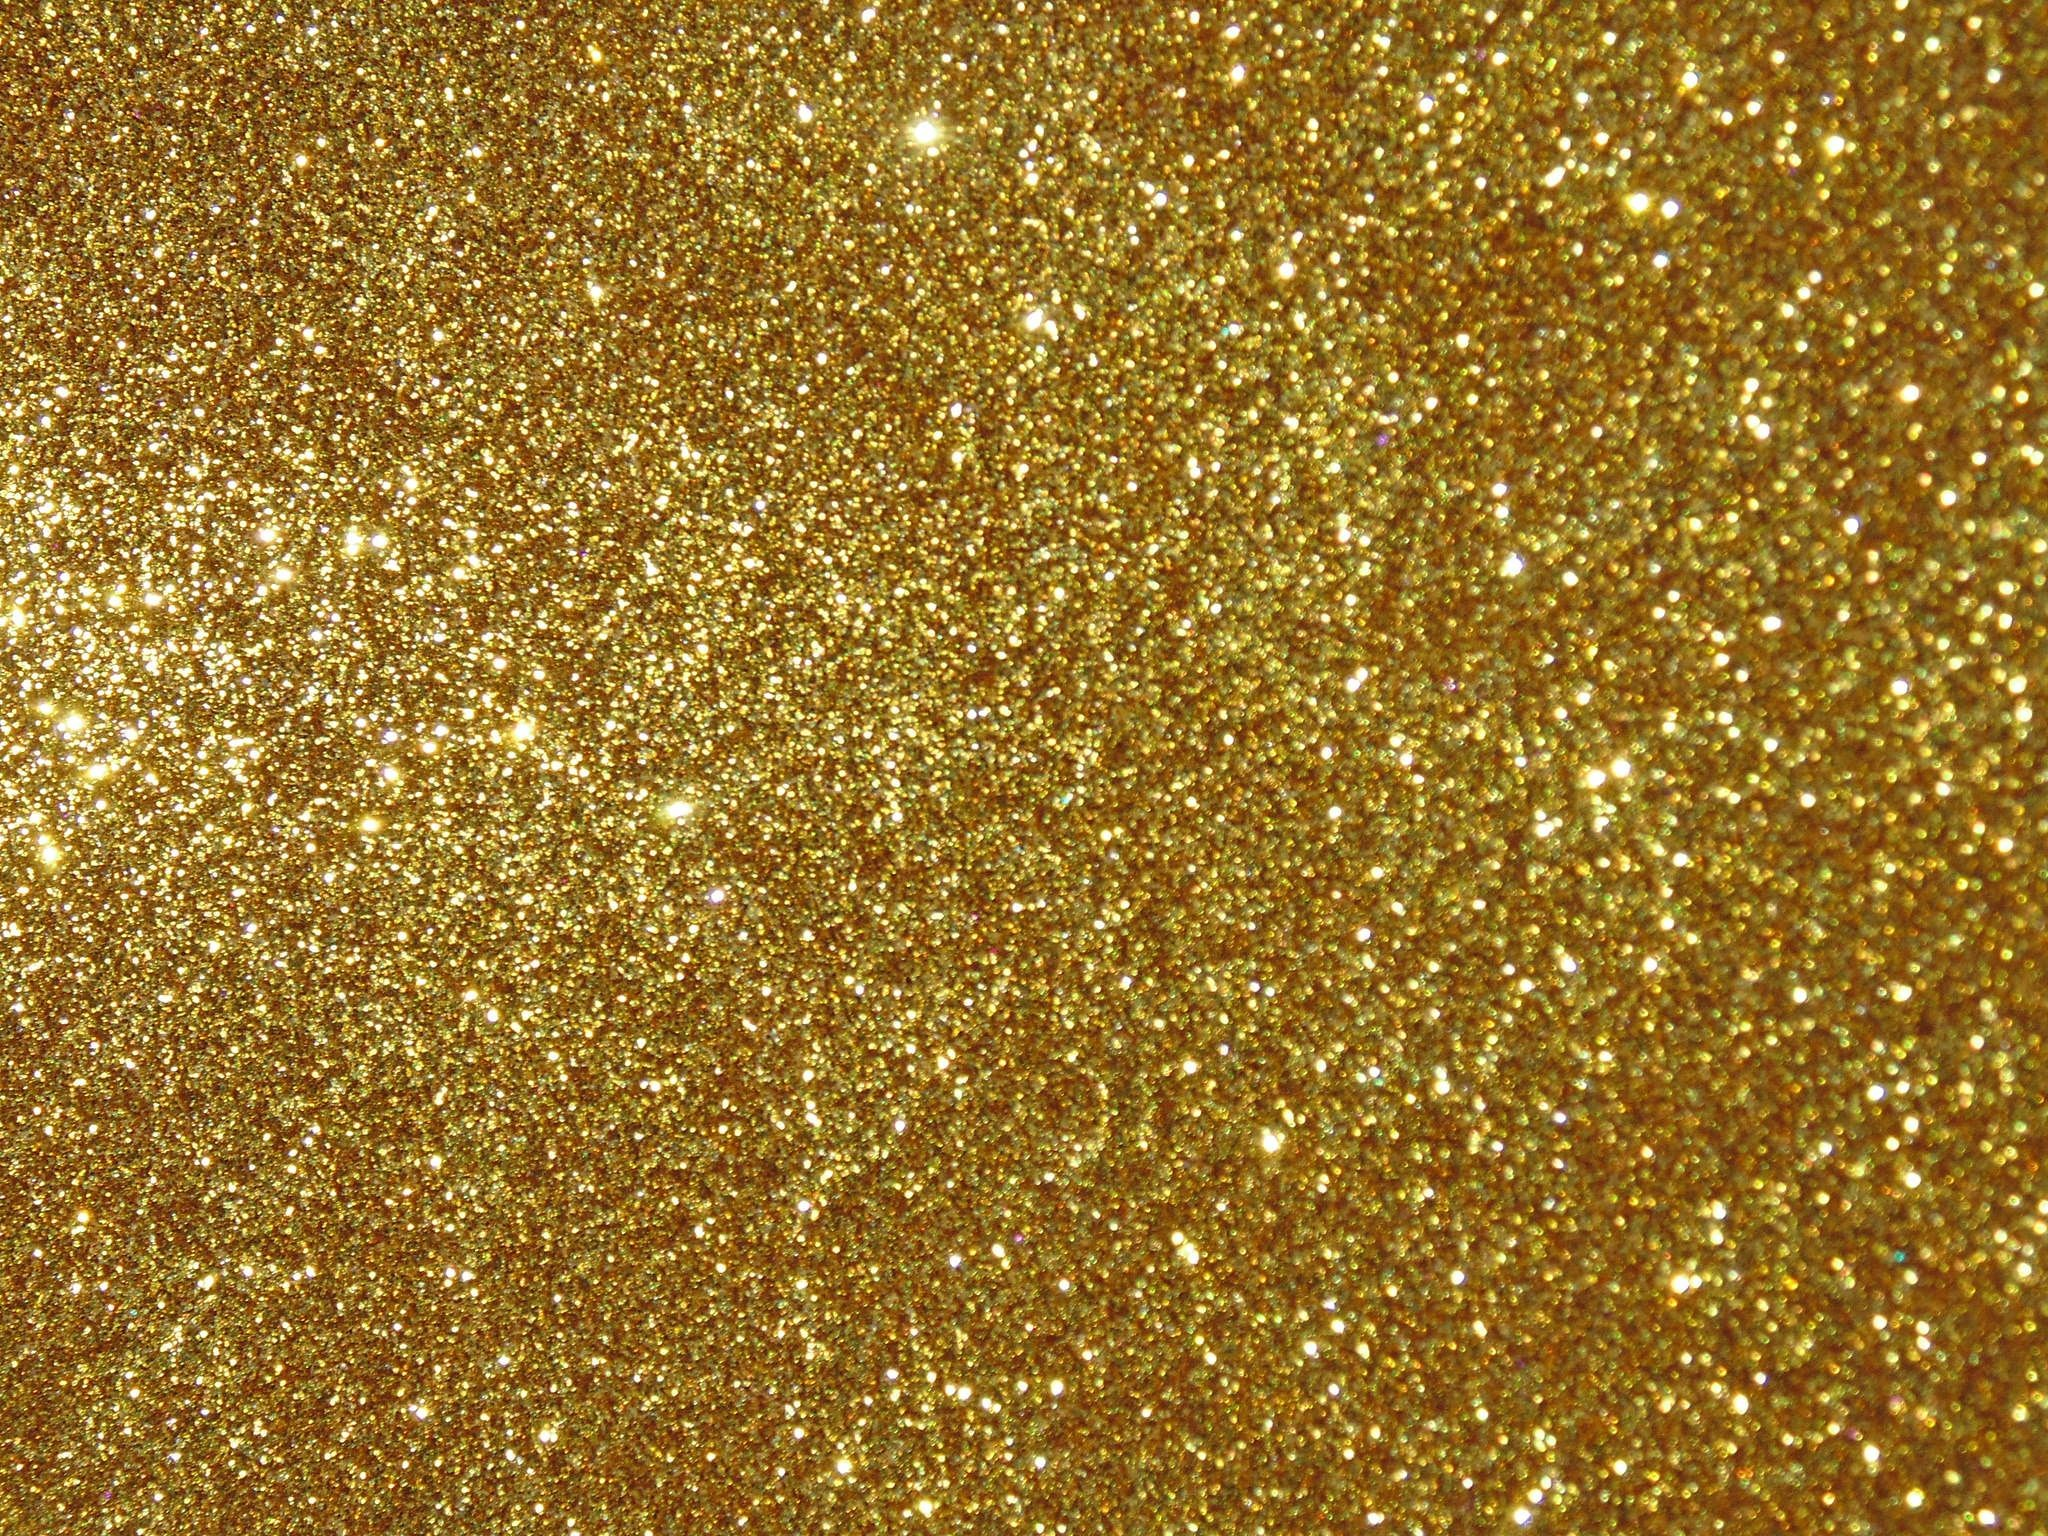 Gold background wallpaper 56 images for Where to get wallpaper